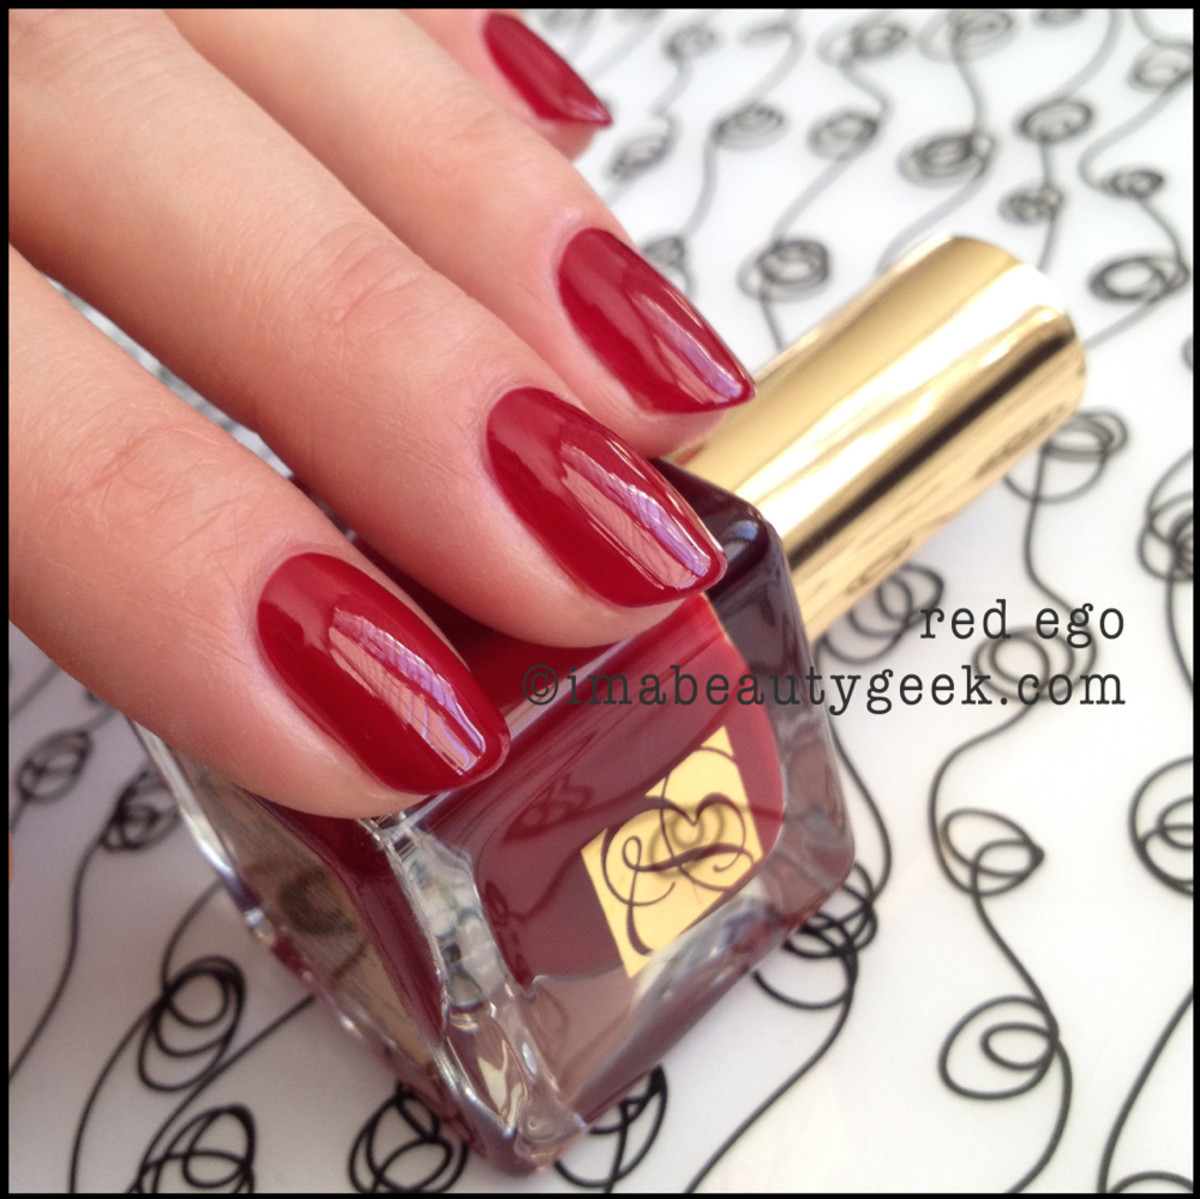 Estee Lauder polish Red Ego